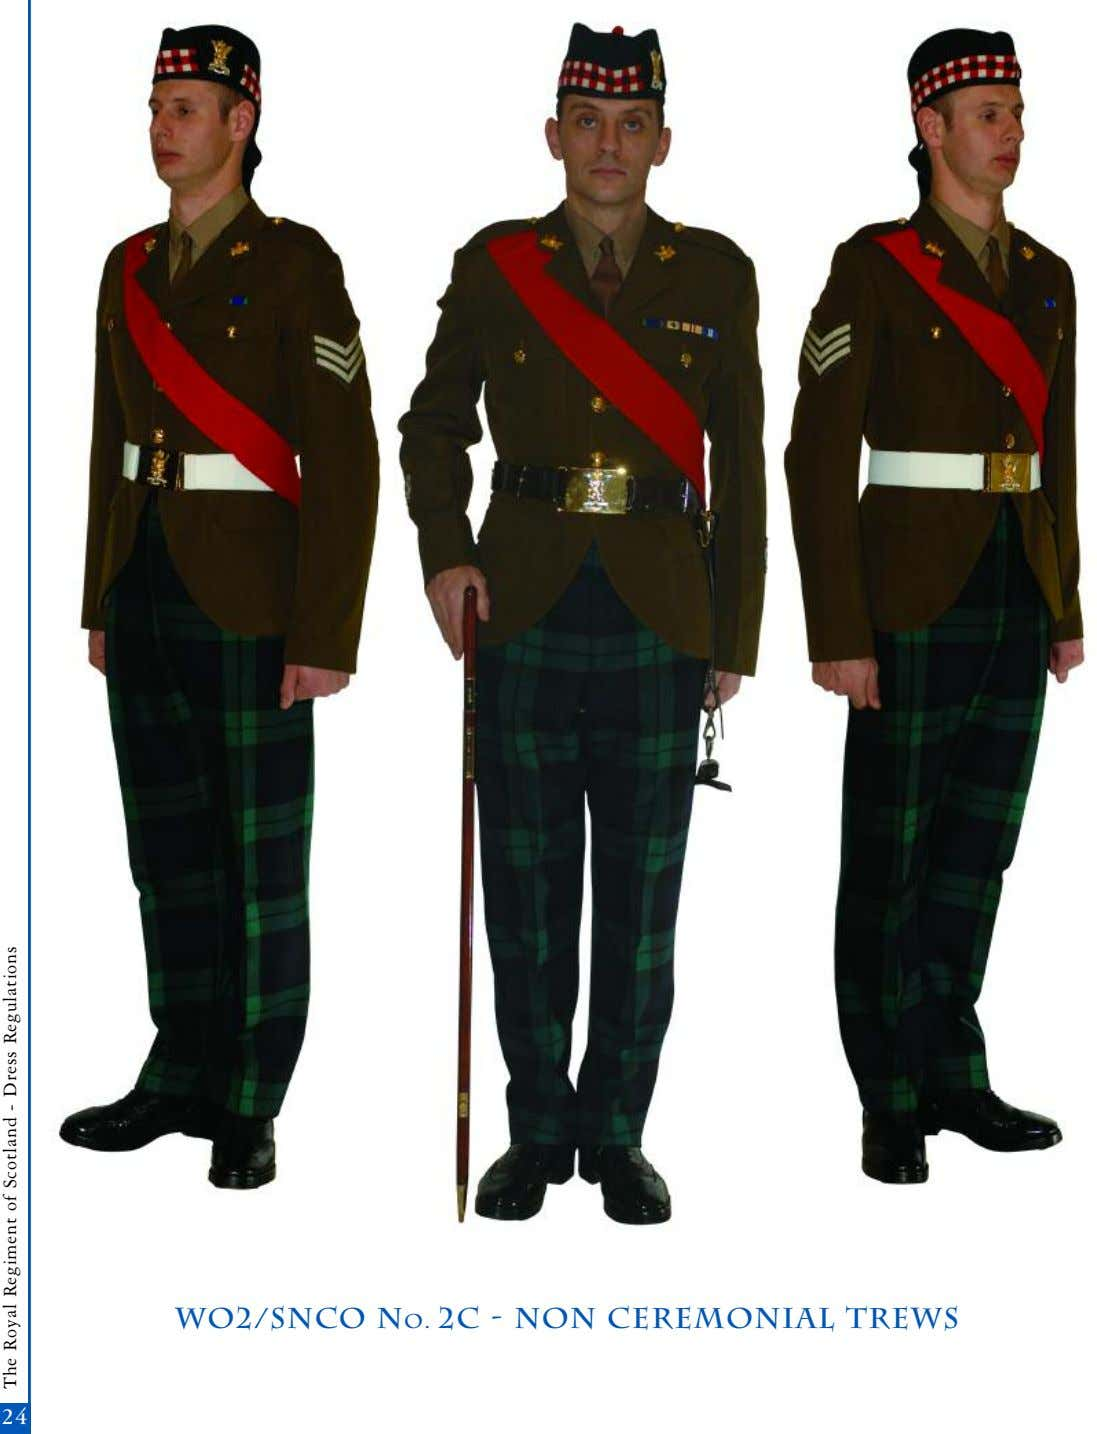 wo2/snco No. 2c - non Ceremonial trews 2424 The Royal Regiment of Scotland - Dress